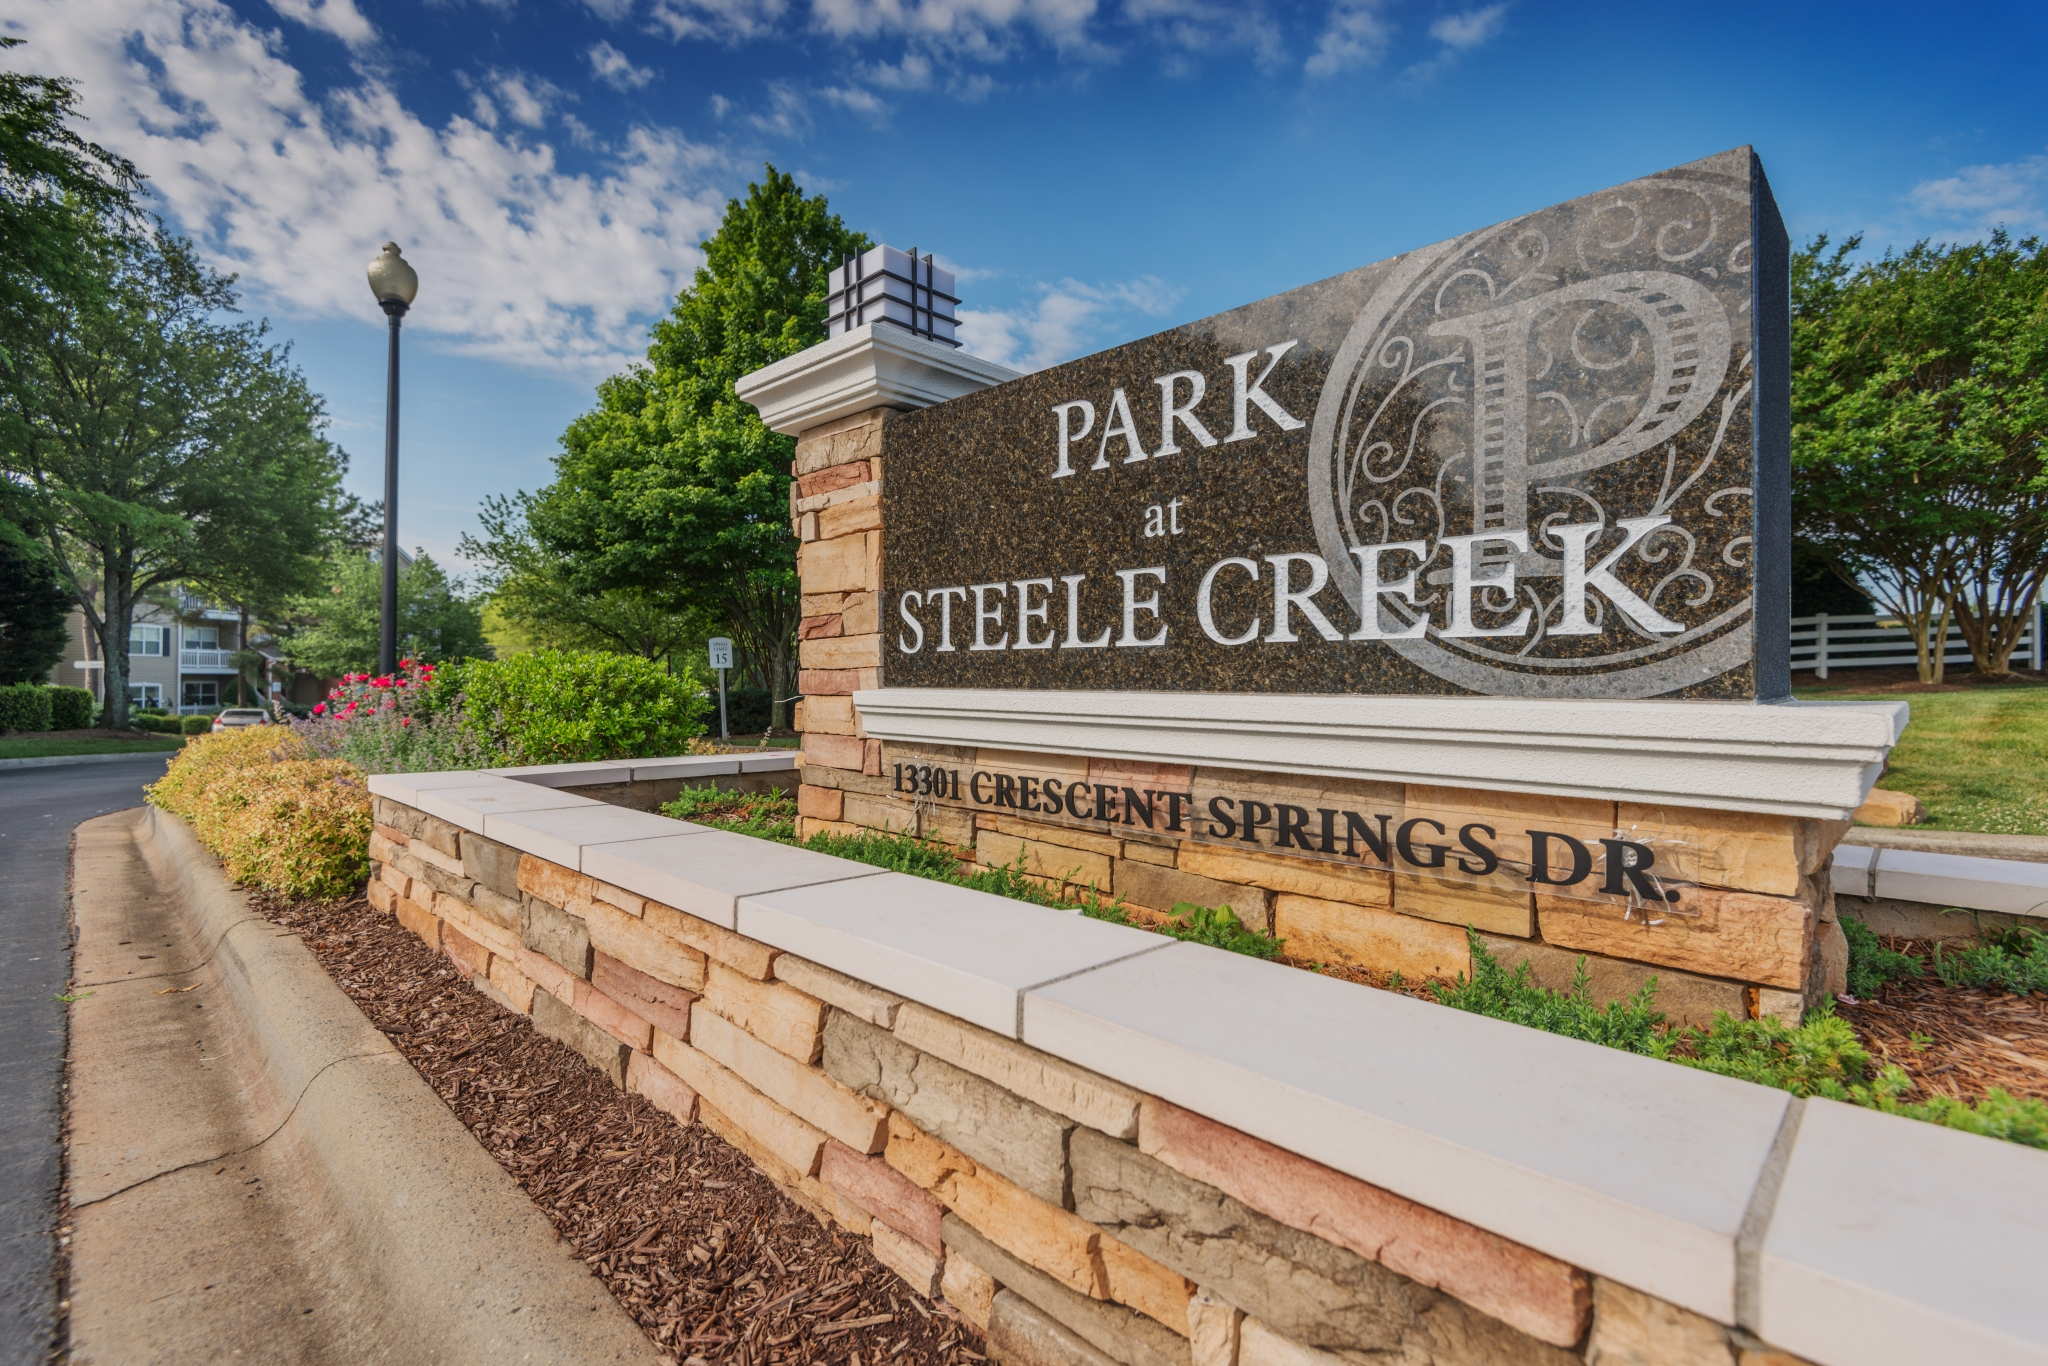 The Park at Steele Creek